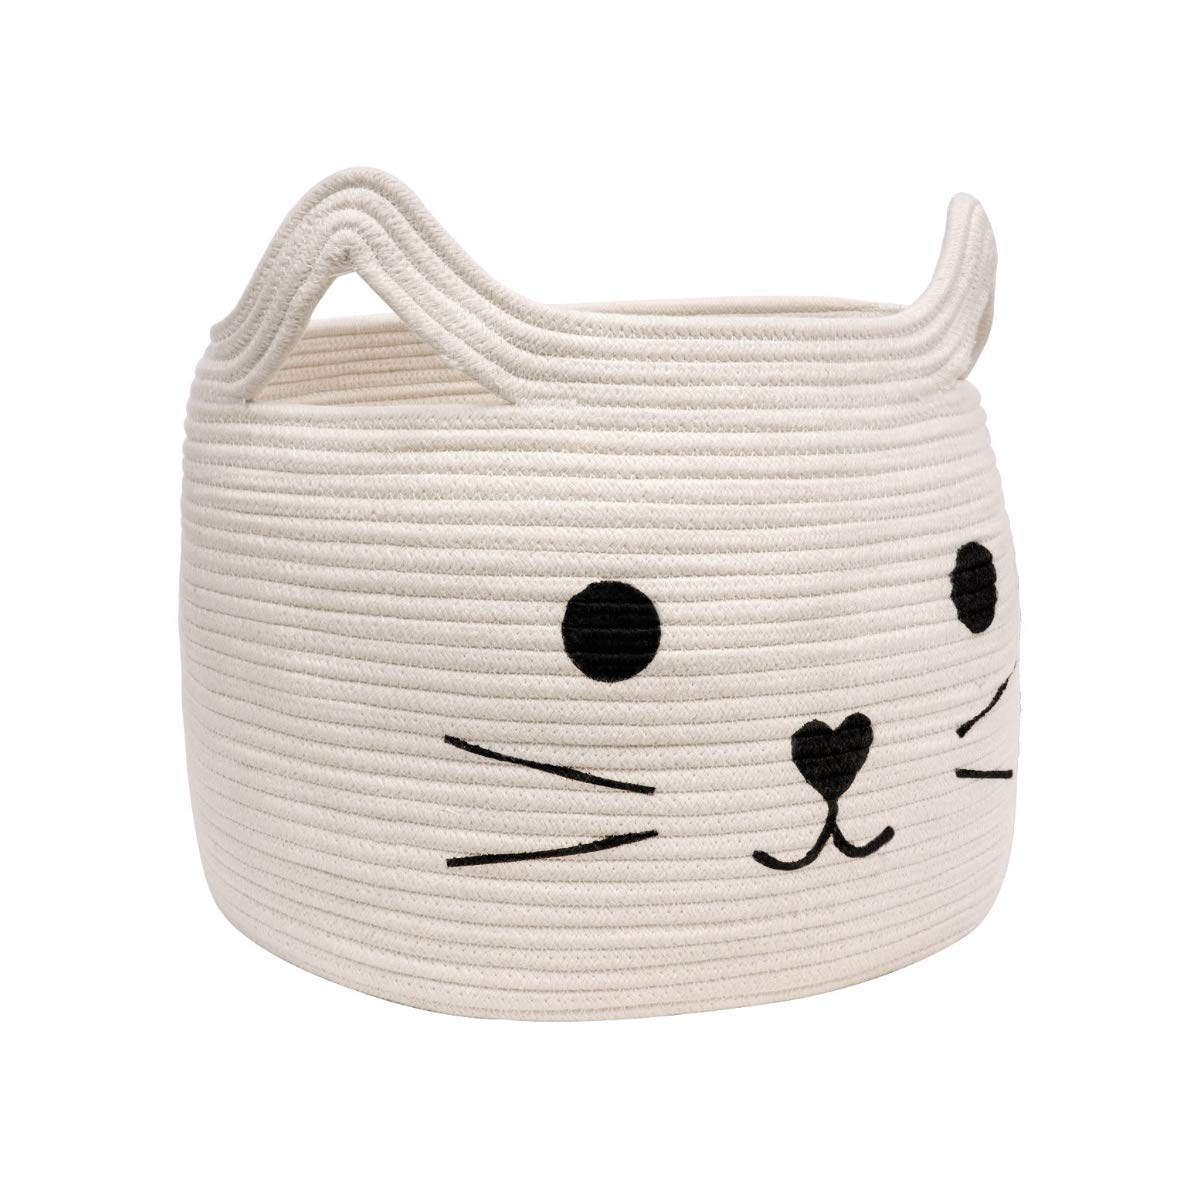 "HiChen Large Woven Cotton Rope Storage Basket, Laundry Basket Organizer for Towels, Blanket, Toys, Clothes, Gifts | Pet Gift Basket for Cat, Dog - 15.7"" L×13"" W×13.4"" H"